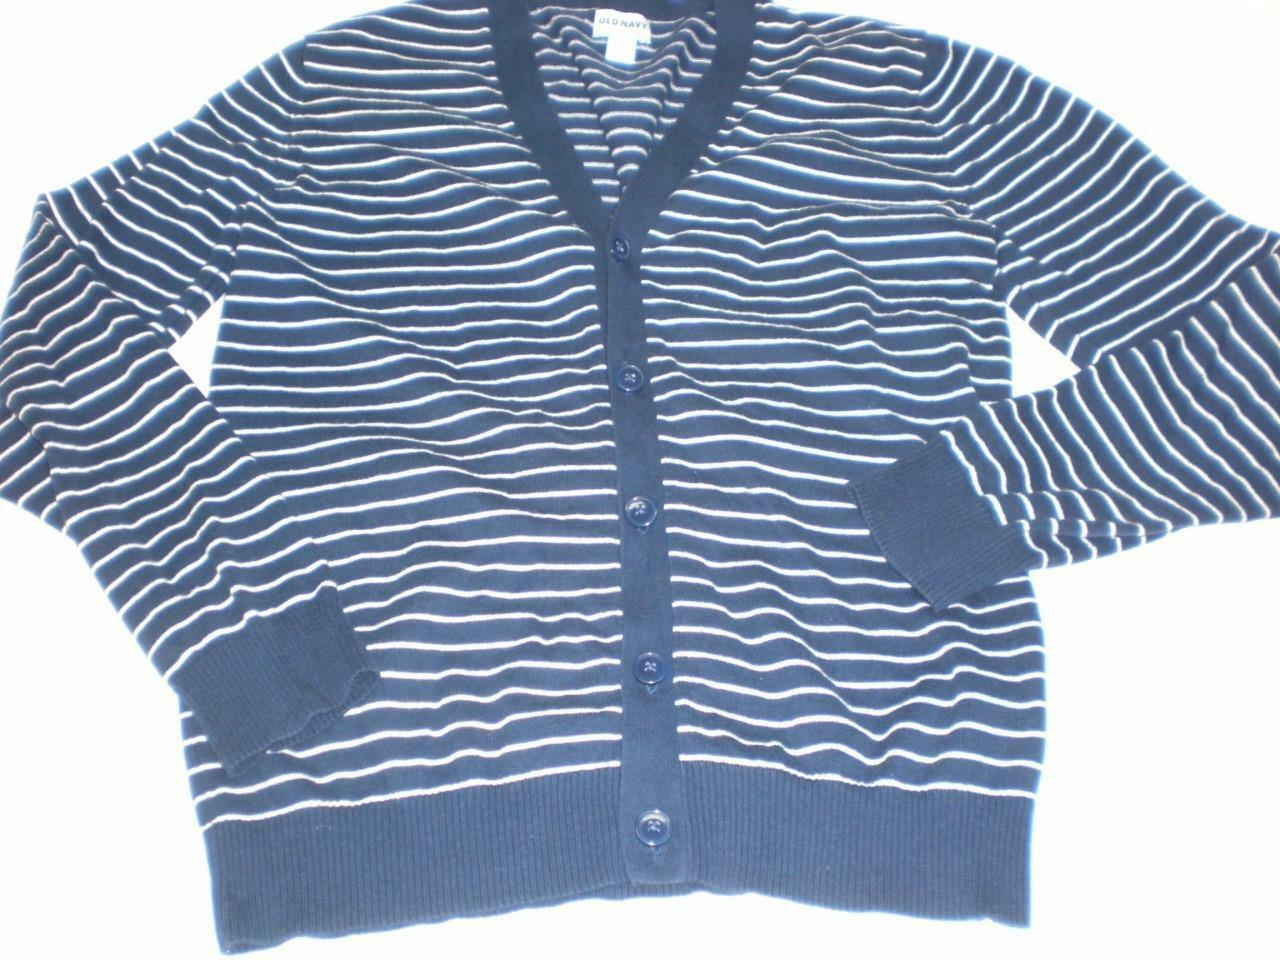 M4933 Mens OLD NAVY Blue/White Striped CARDIGAN SWEATER Cotton ...